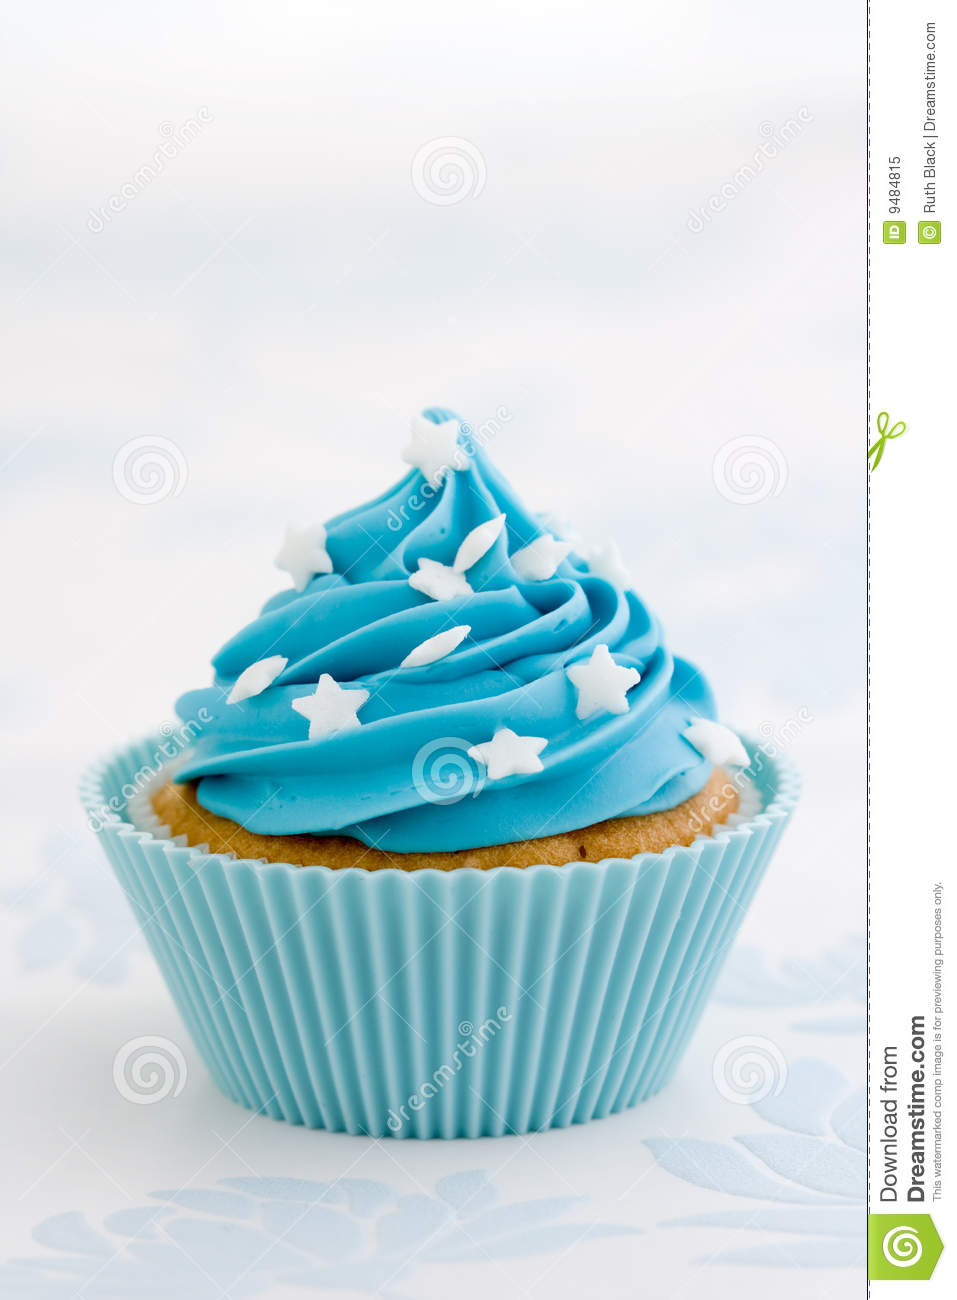 Blue Cupcake Stock Image Image Of Frosted Iced Cakes